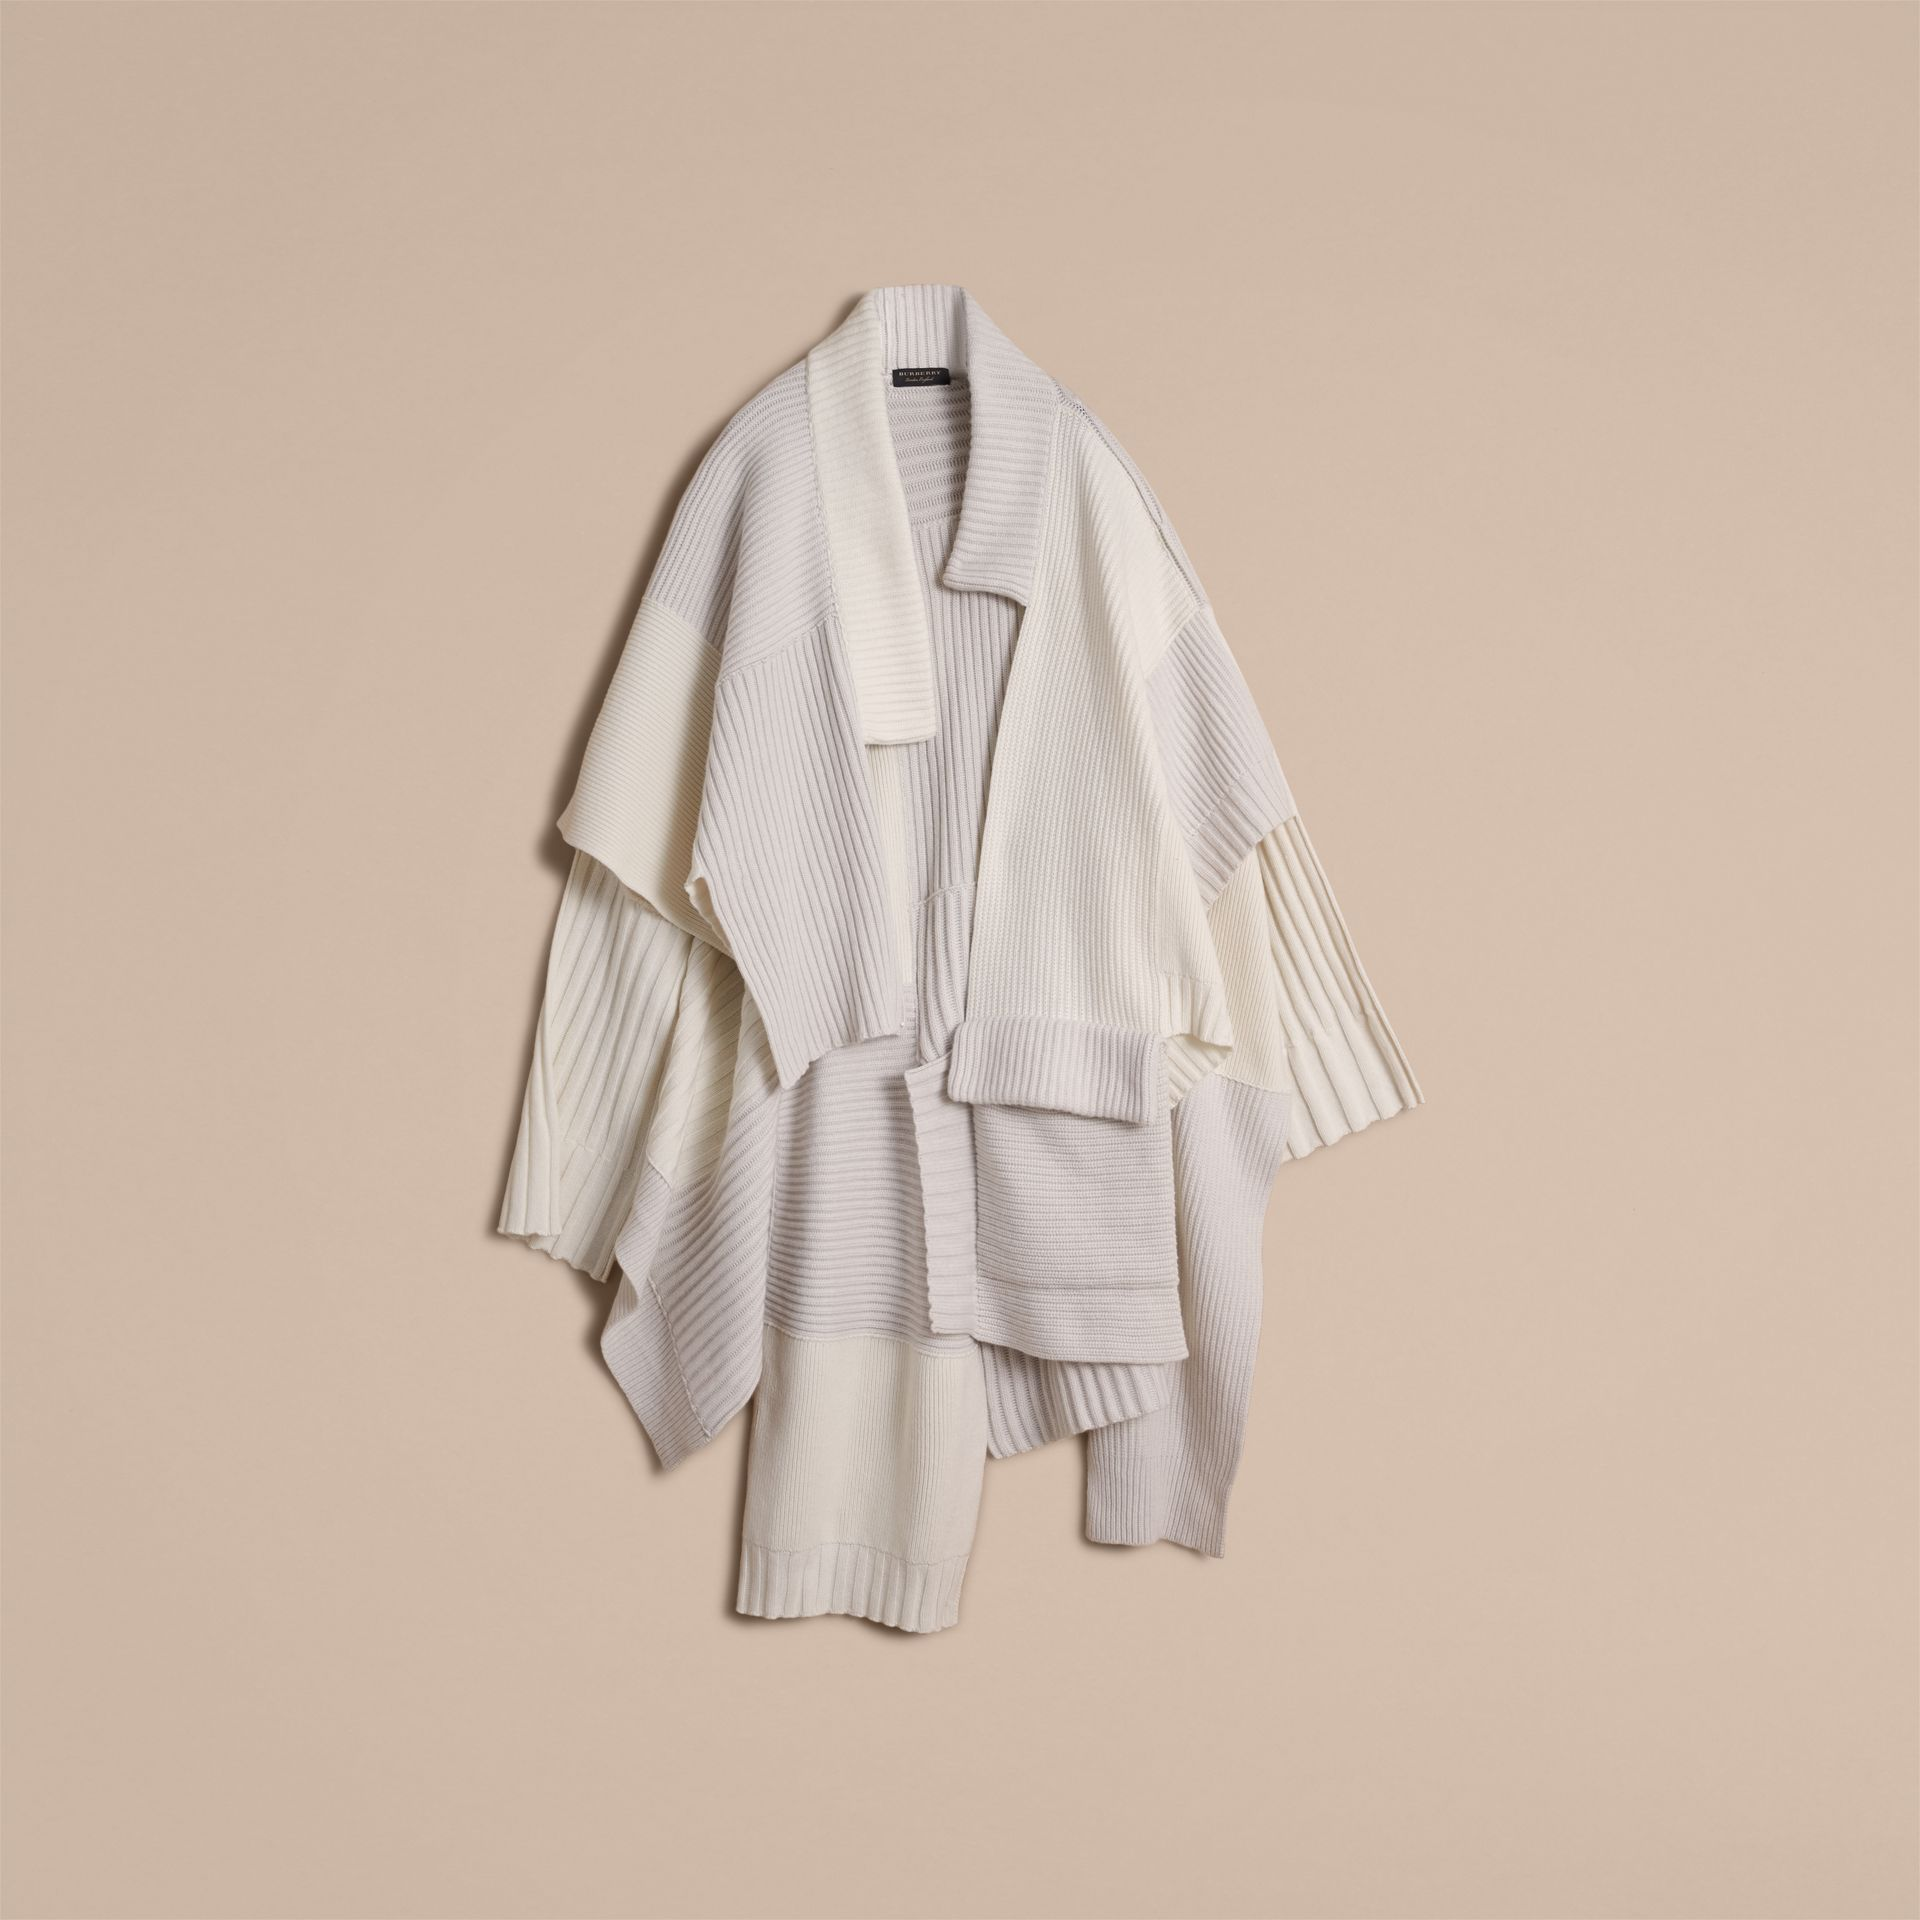 Wool Cashmere Patchwork Poncho in Natural White - Women | Burberry - gallery image 3